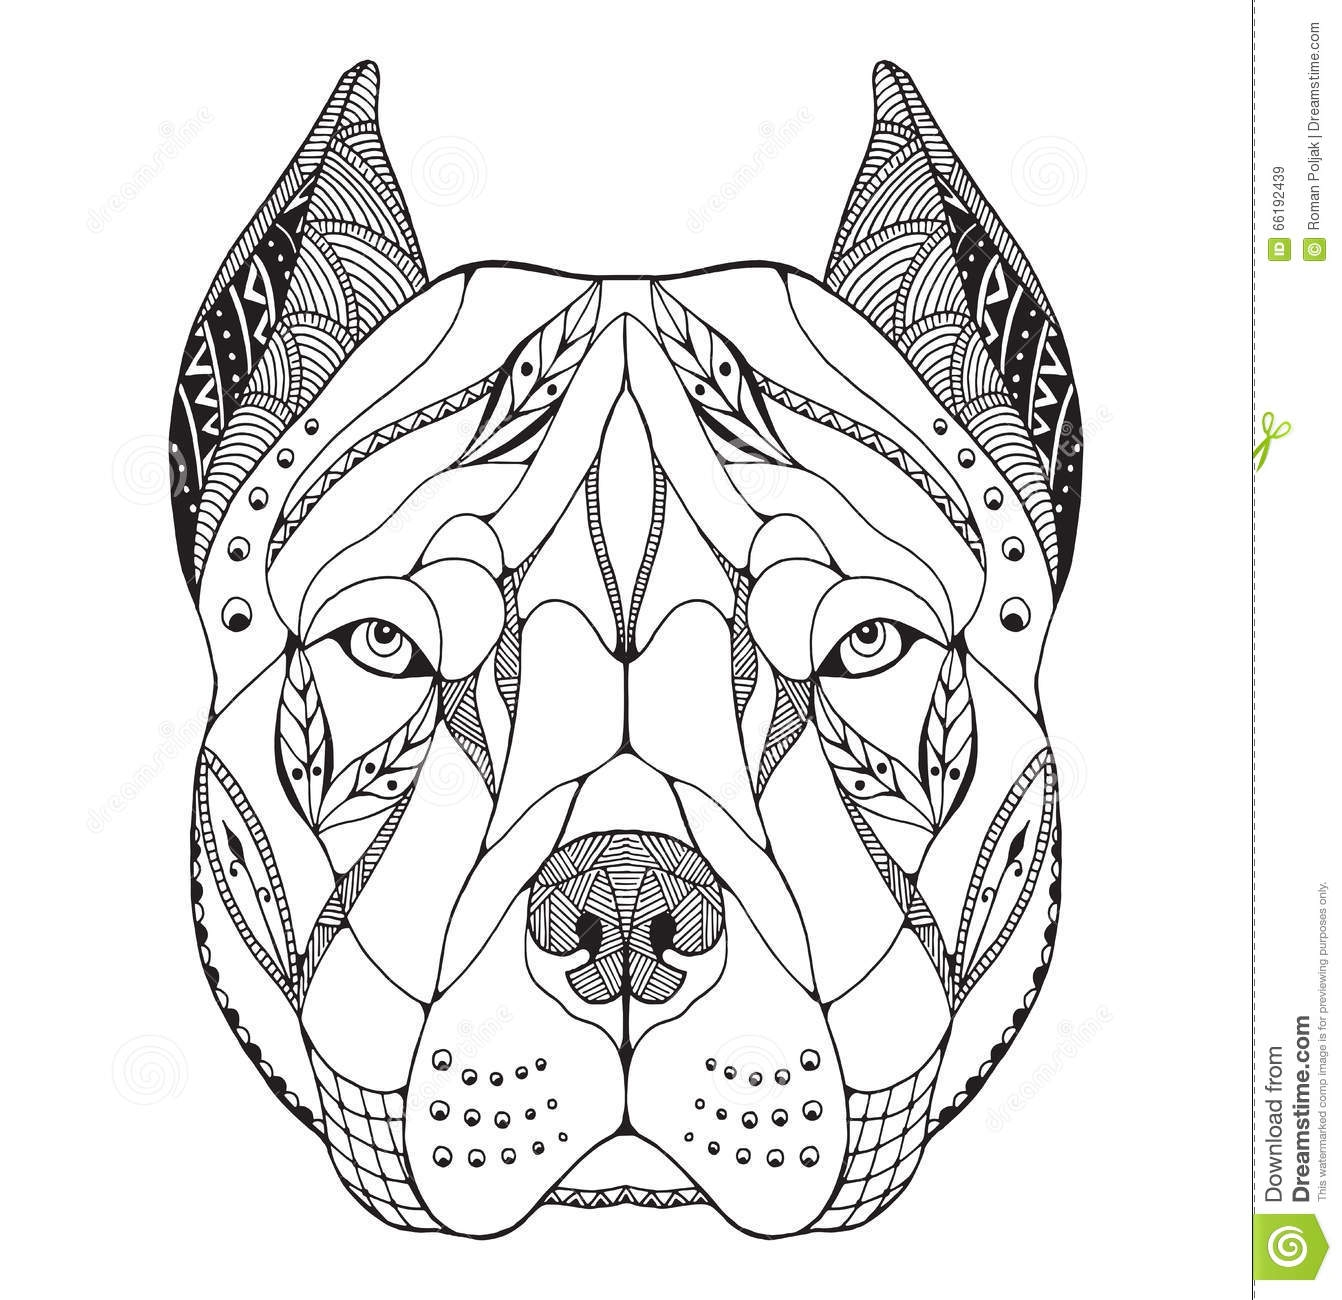 calming coloring pages - stock illustration pit bull terrier head zentangle stylized vector illustration freehand pencil hand drawn pattern zen art ornate lace print image